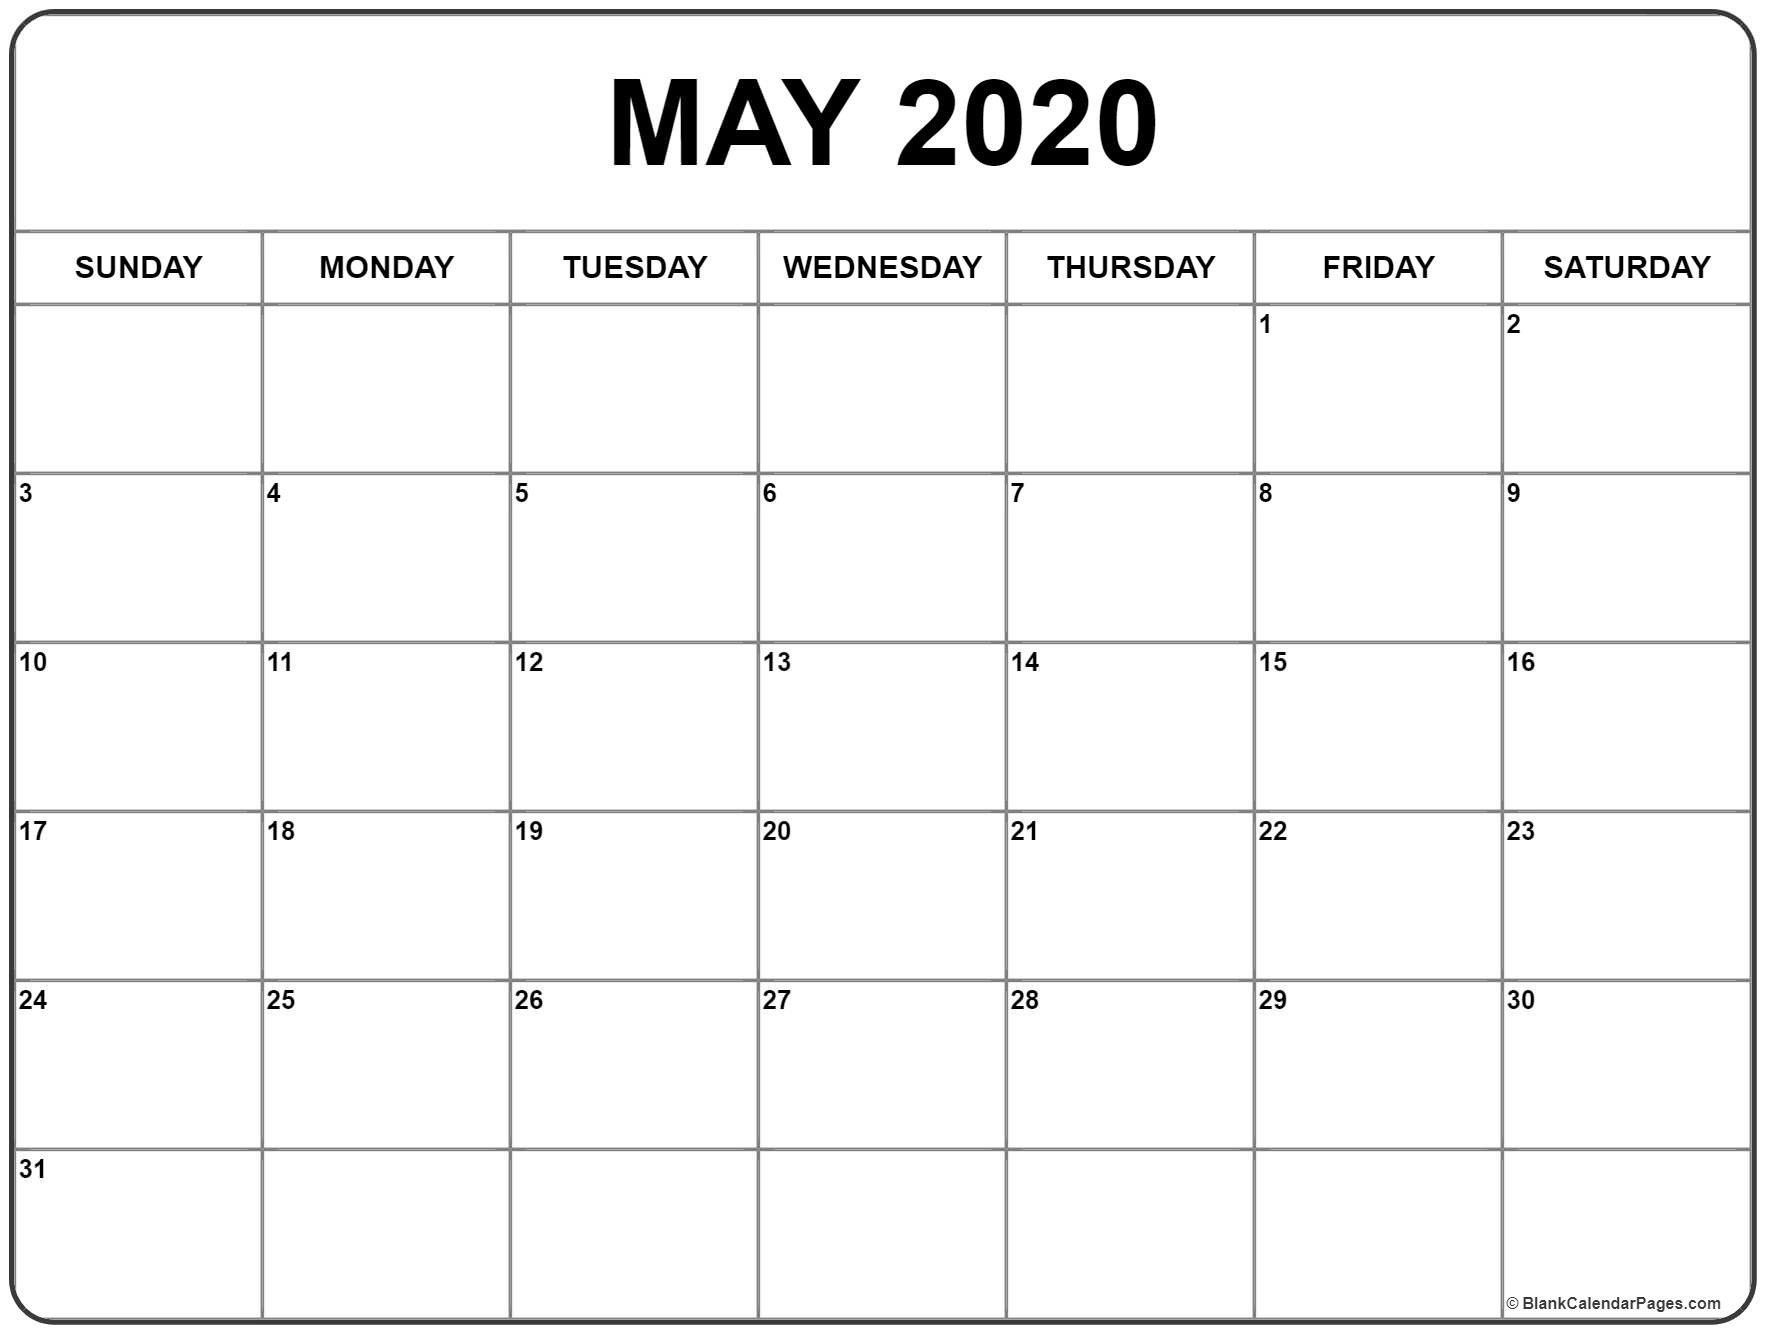 Blank May 2020 Calendar Printable | Calendar Printables